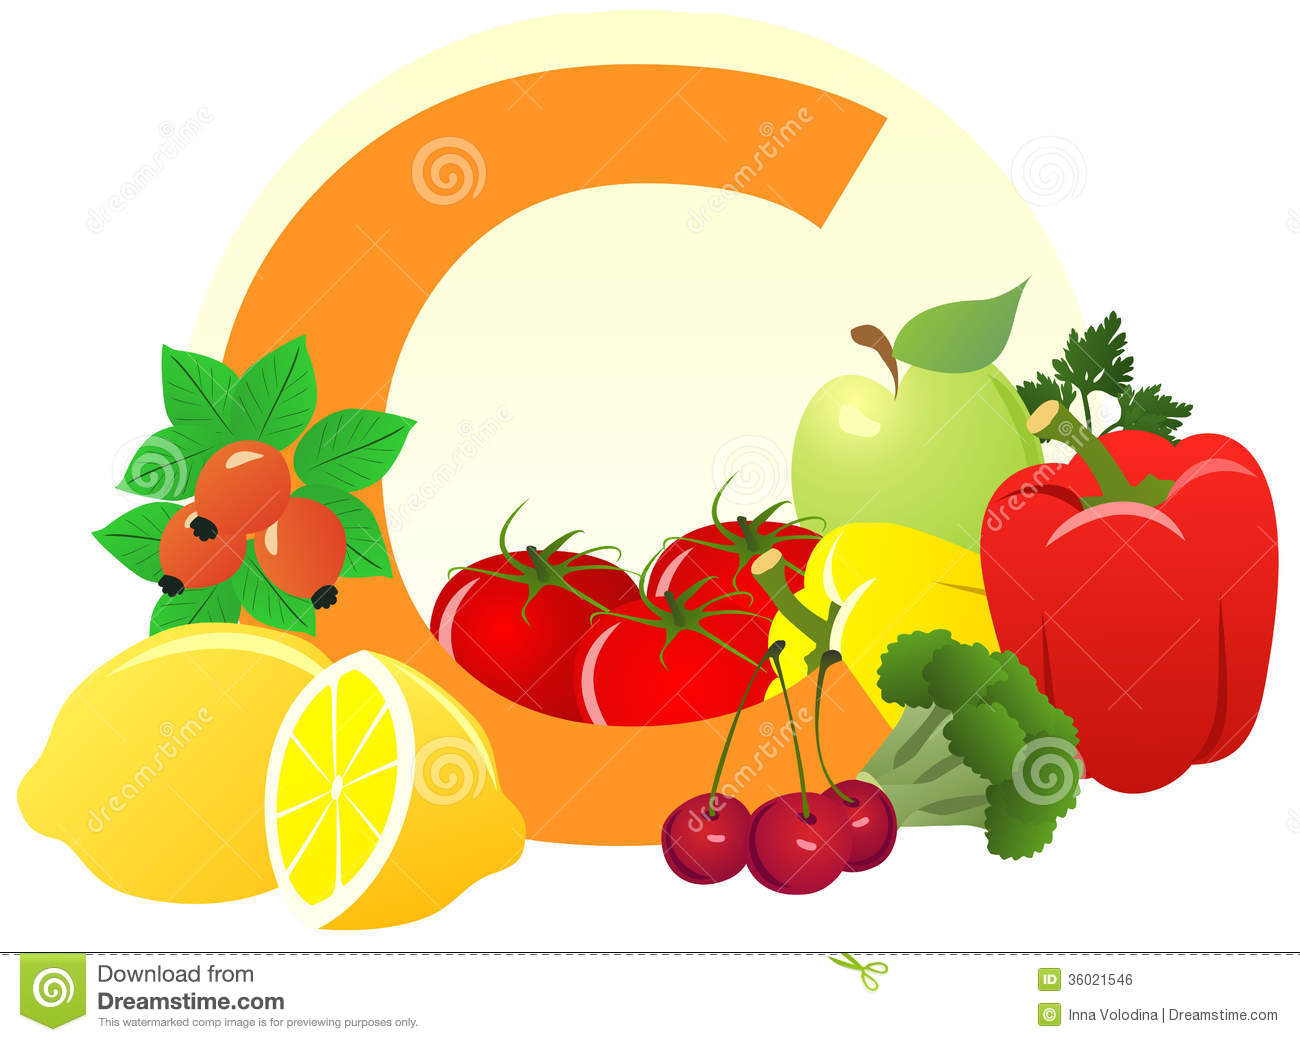 Vitamin c fruits clip art.